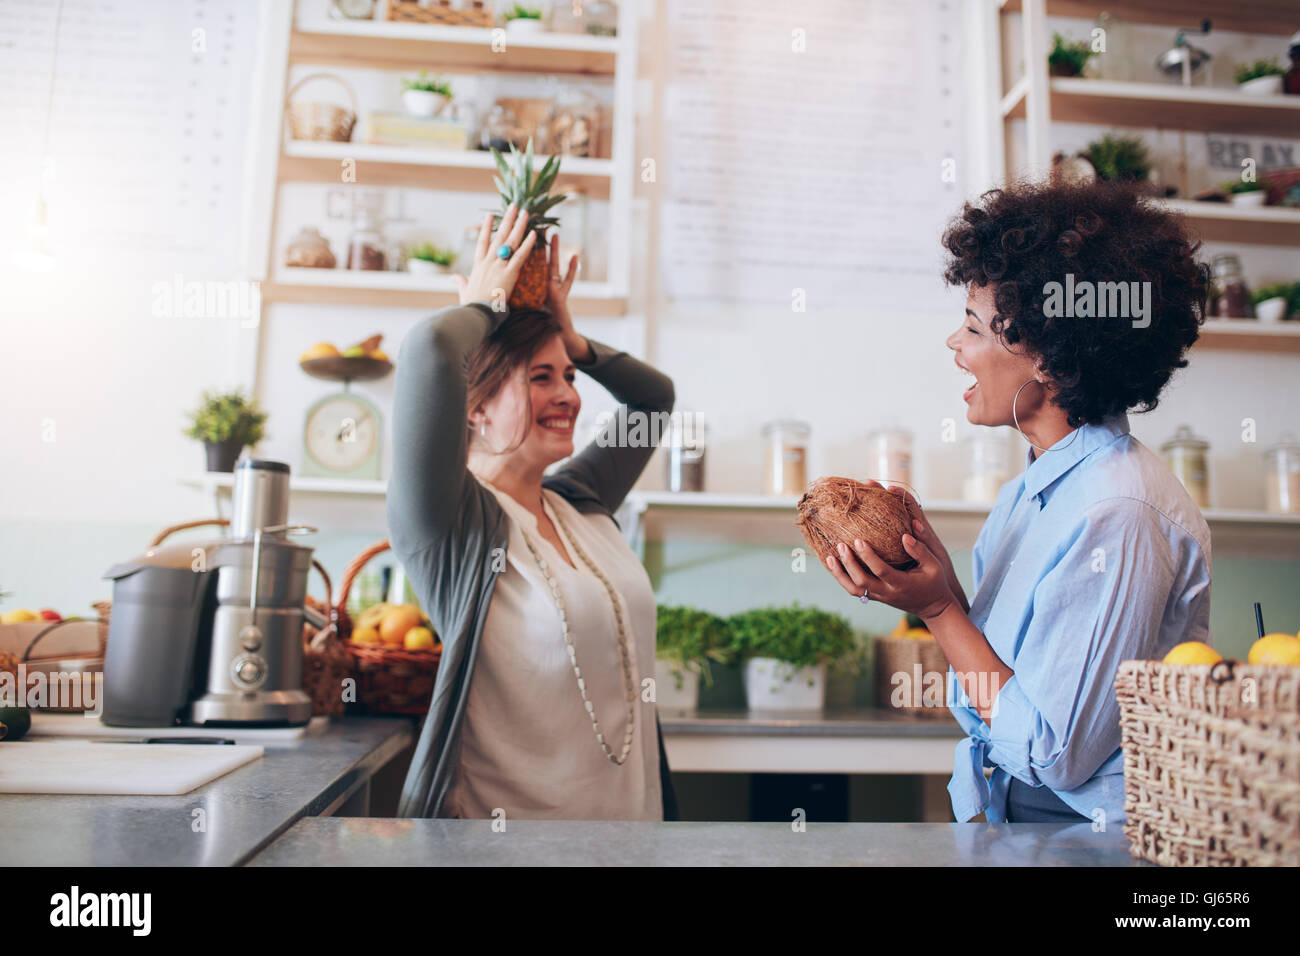 Juice bar employees playing with fruits at work. Young women holding coconut and pineapple while standing at bar - Stock Image